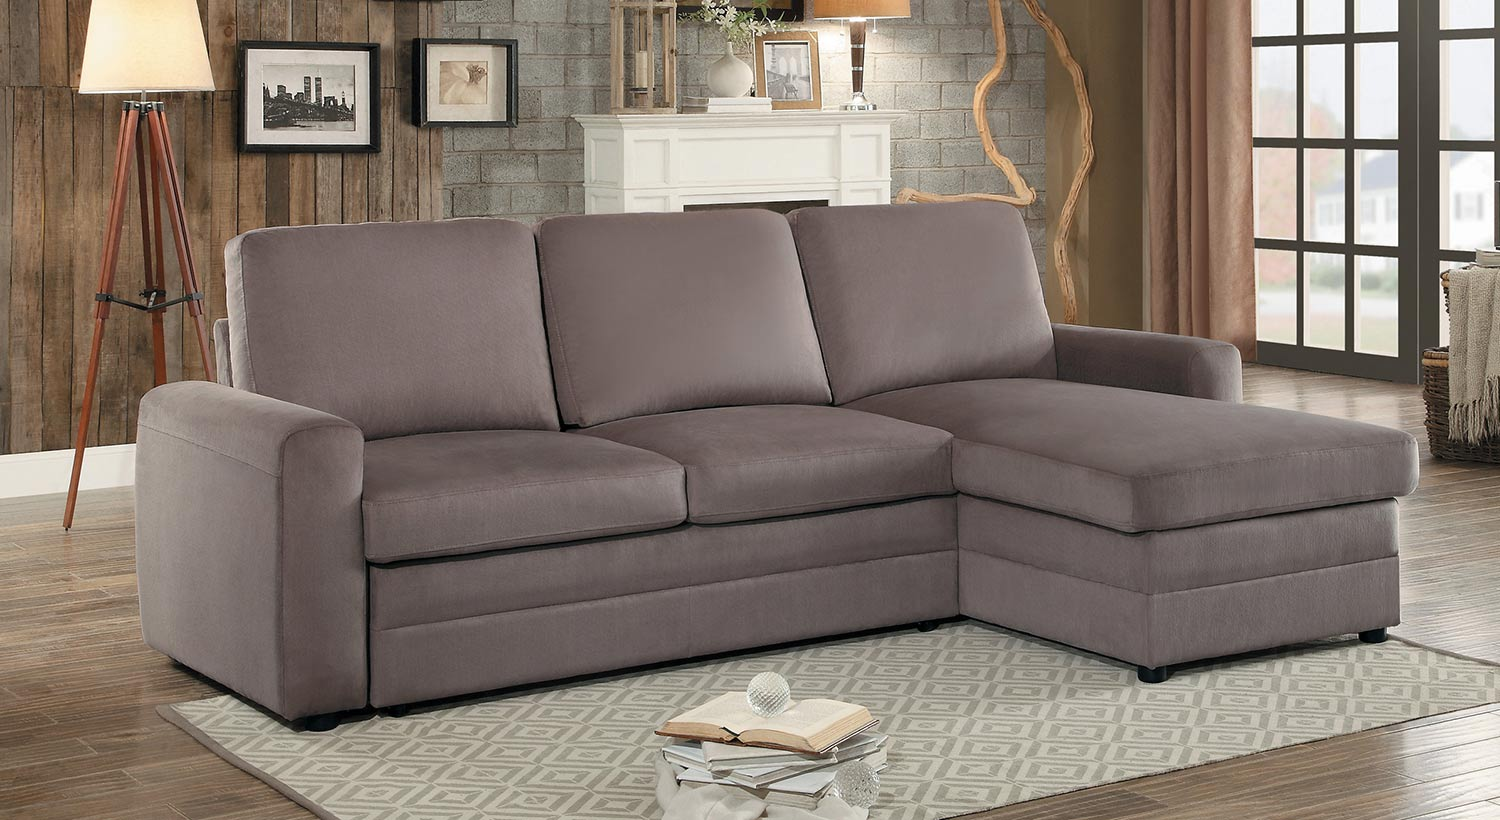 Homelegance Welty Reversible Sleeper Sectional with Hidden Storage - Fossil Fabric